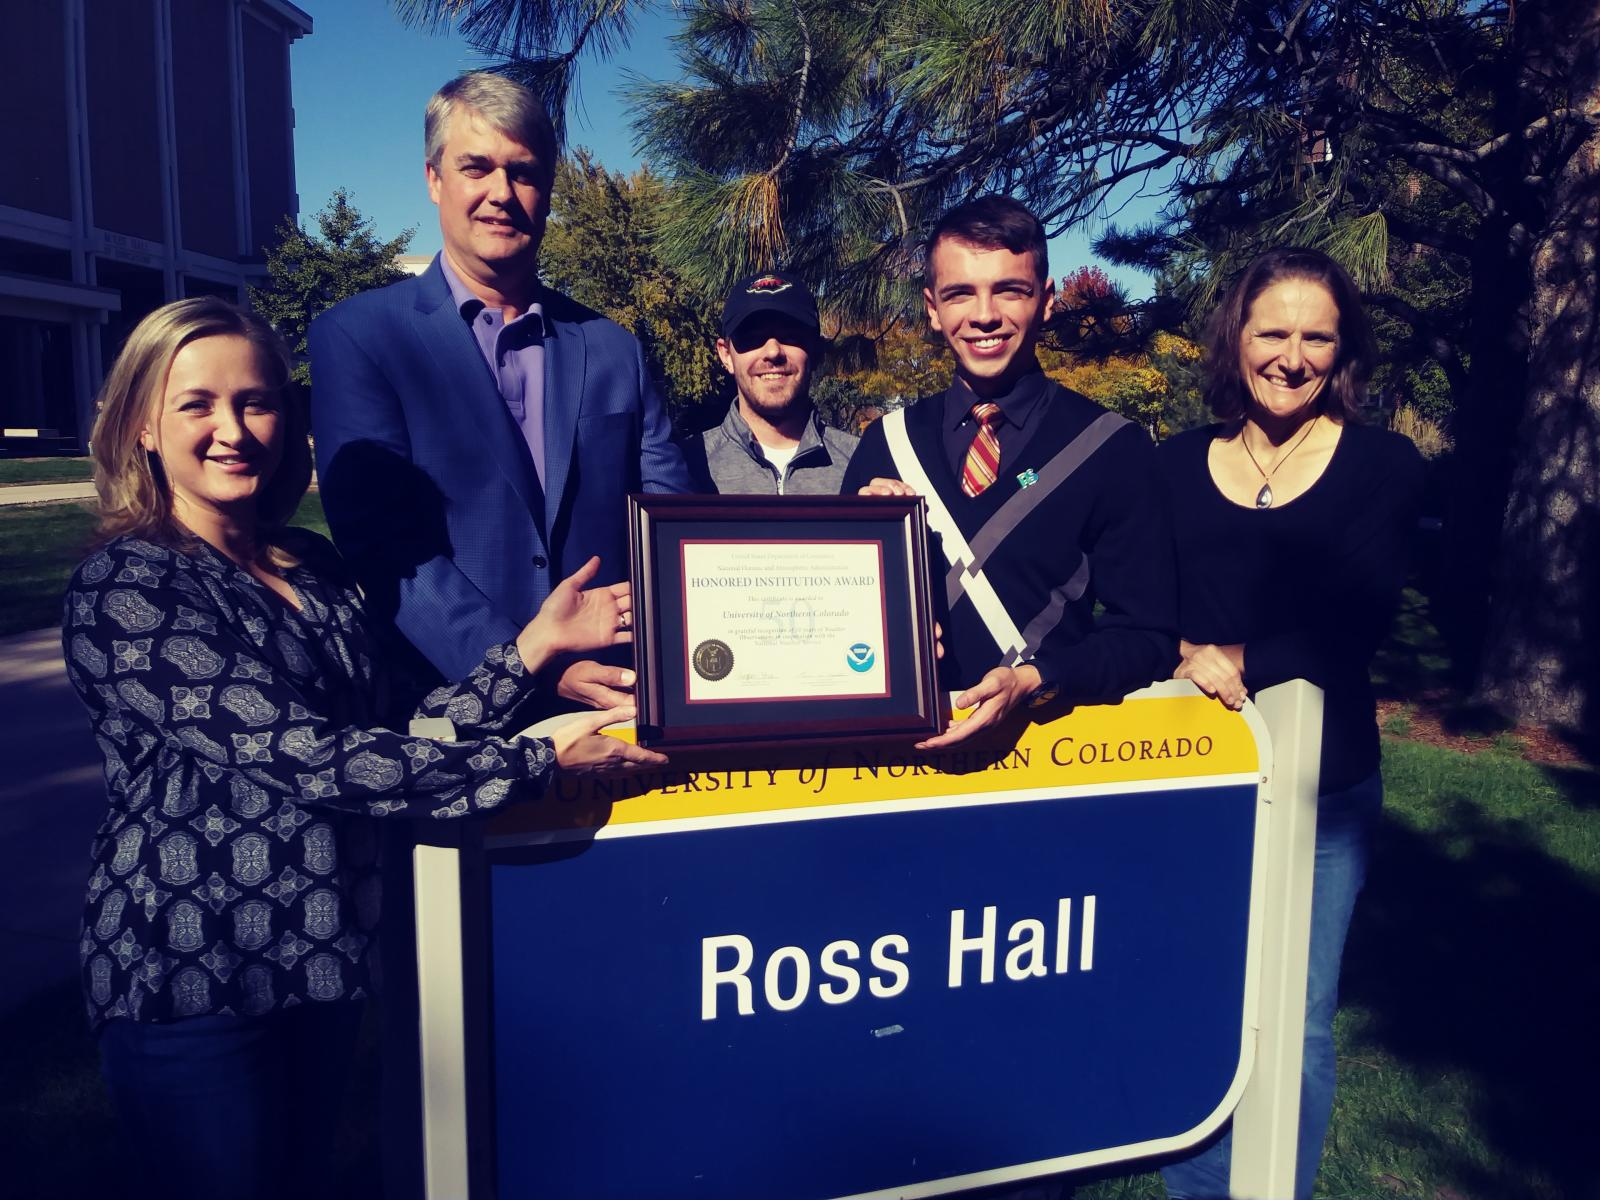 UNC Greeley receives its Honored Institution Award for 50 Years of Service